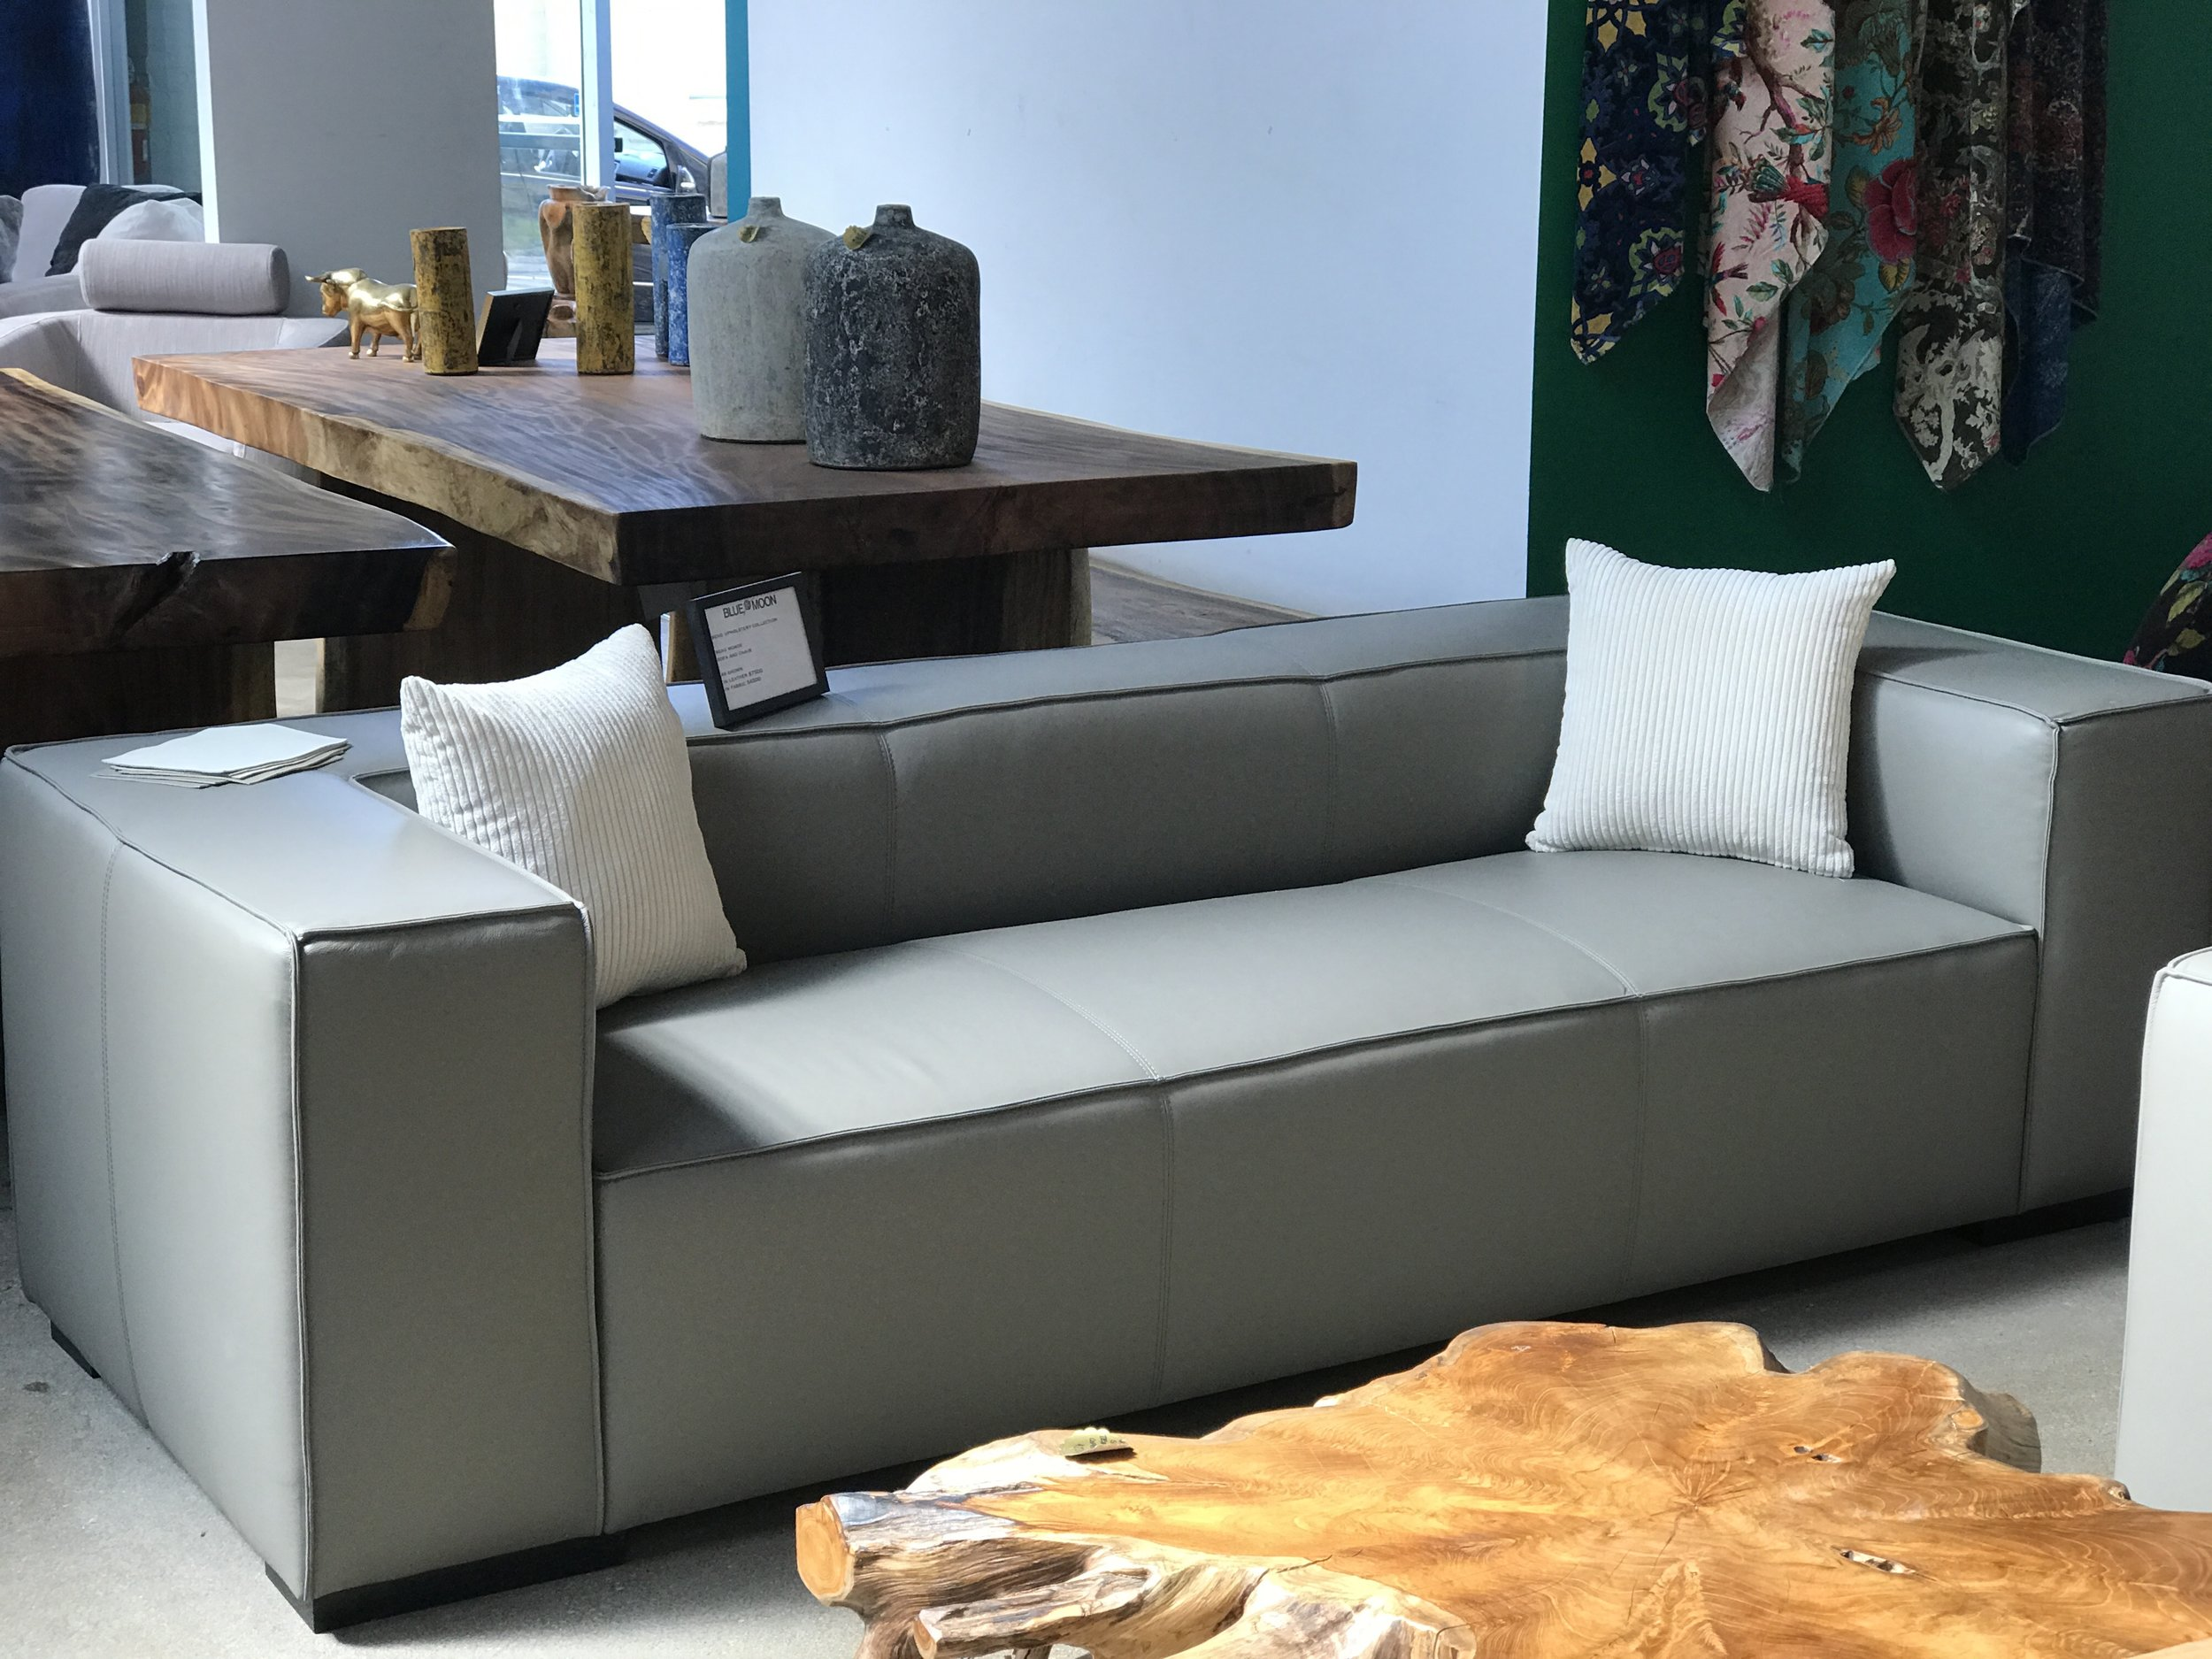 beau monde sofa. Blue Moon Furniture. artista show home furniture.jpg